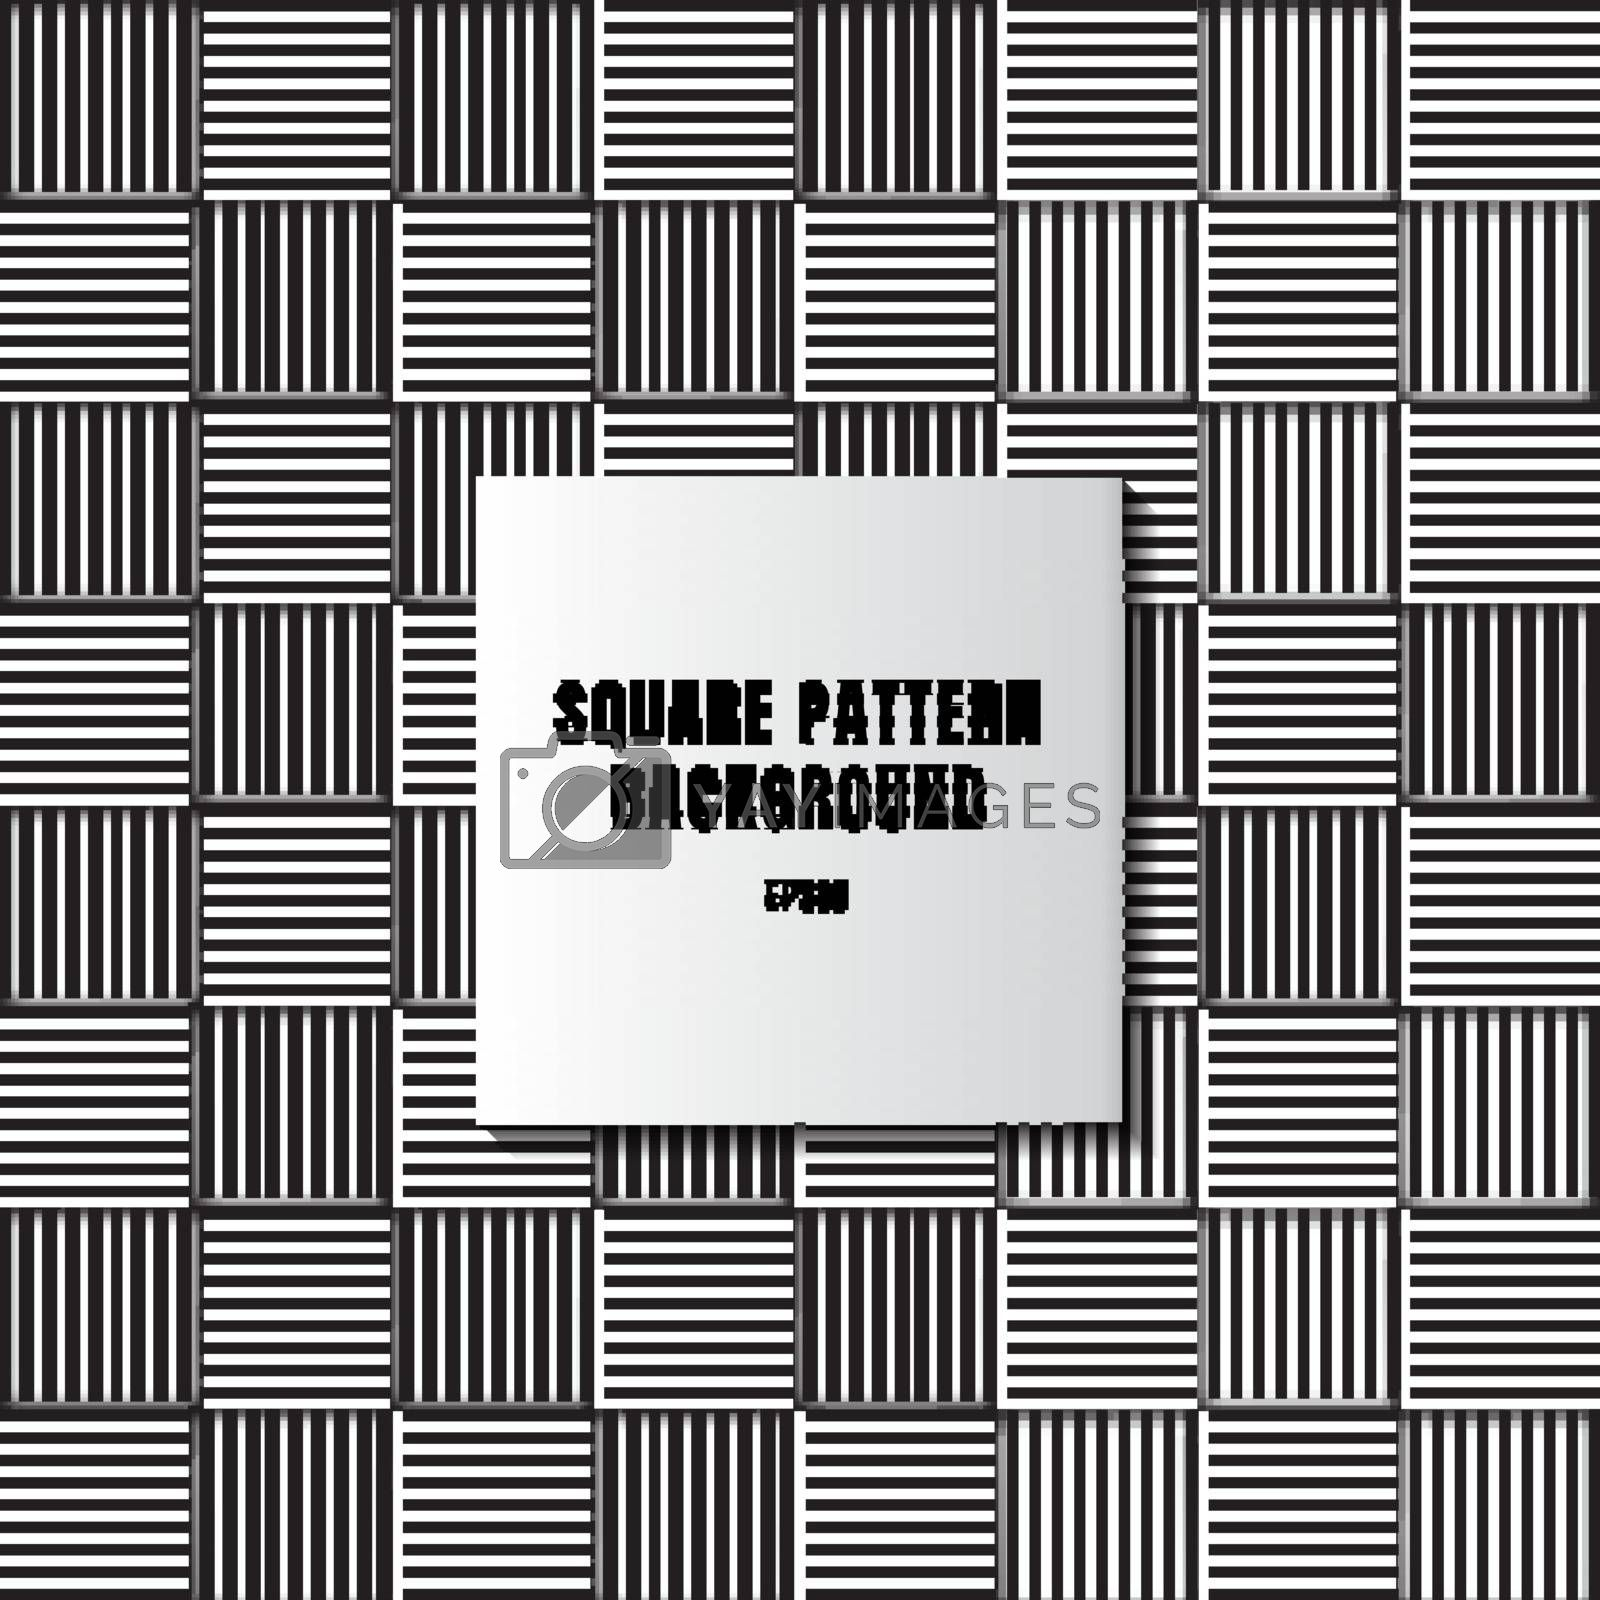 Abstract black and white mosaic of squares with vertical and horizontal lines pattern lattice background and texture. Vector illustration